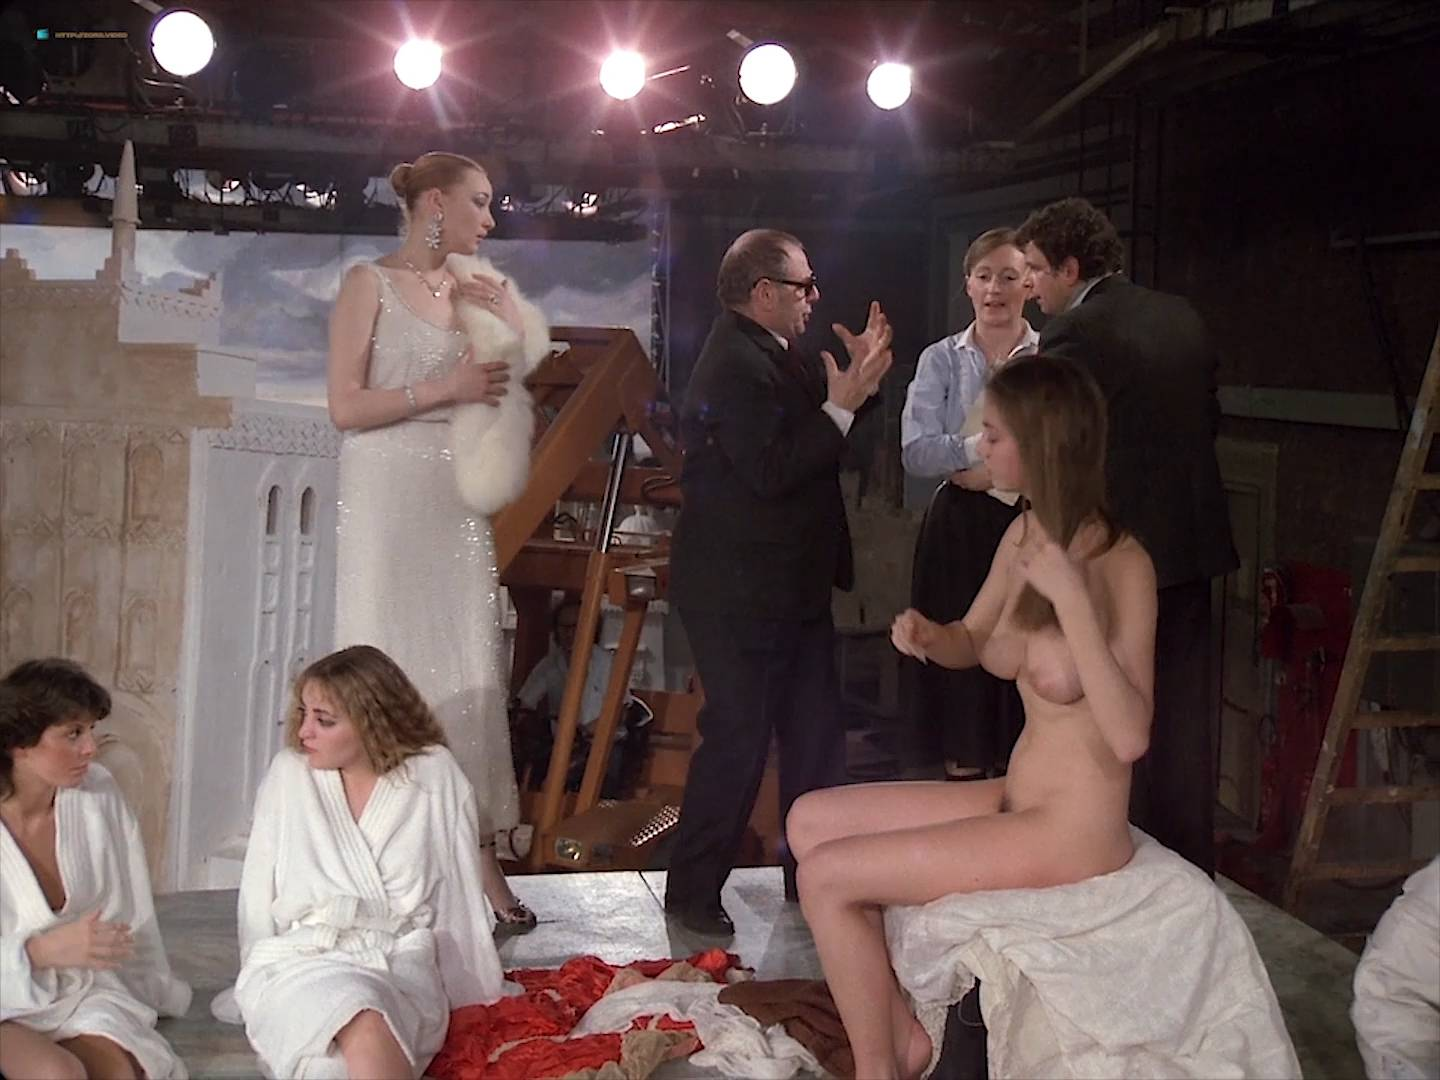 Isabelle Huppert nude Myriem Roussel nude full frontal others nude too - Passion (FR-1982) HD 1080p BluRay (15)